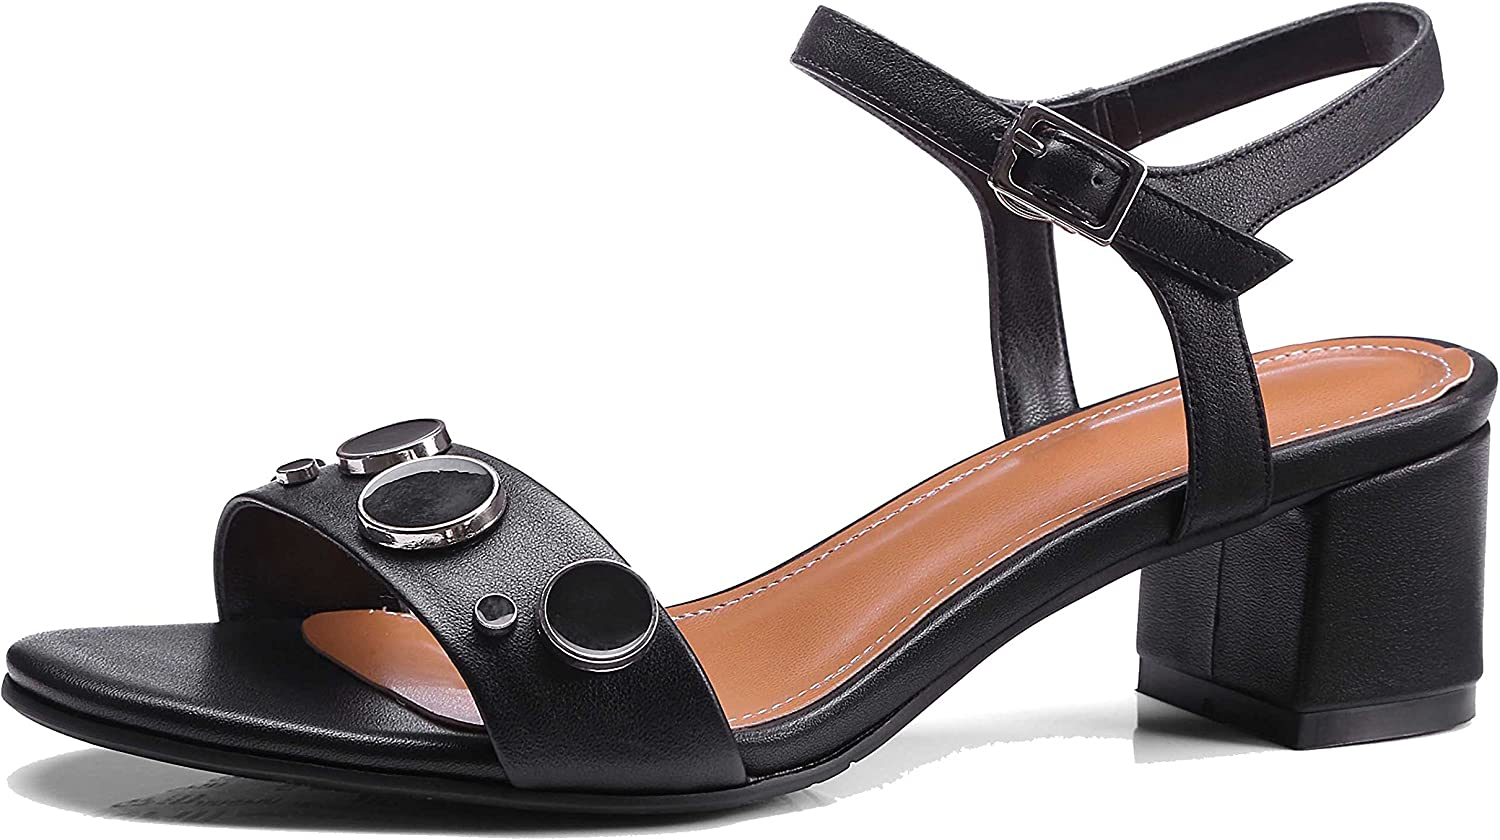 A-BUYBEA Women's Fashion 1.97  Chunky Low-Heeled Leather Sandal shoes Black Grey Size 4.5-9.5